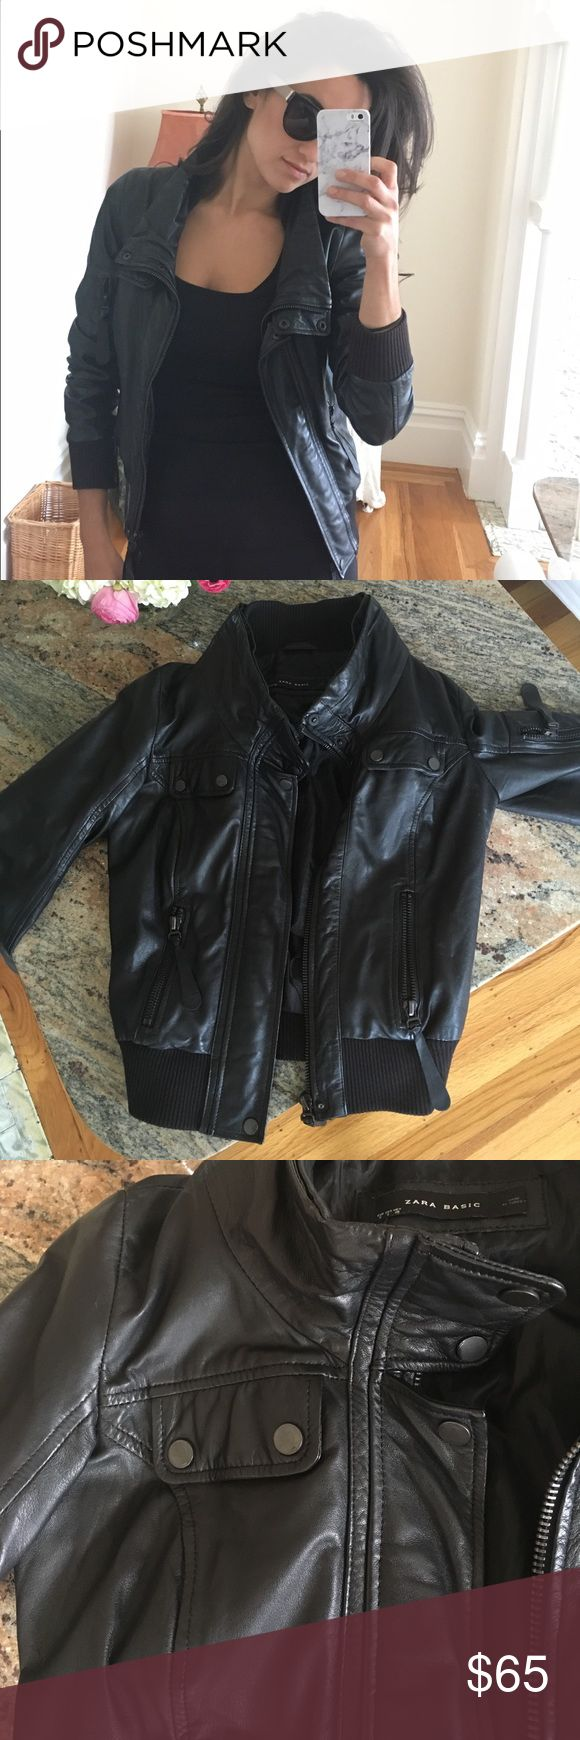 Black leather jacket Real 100 leather motorcycle bomber